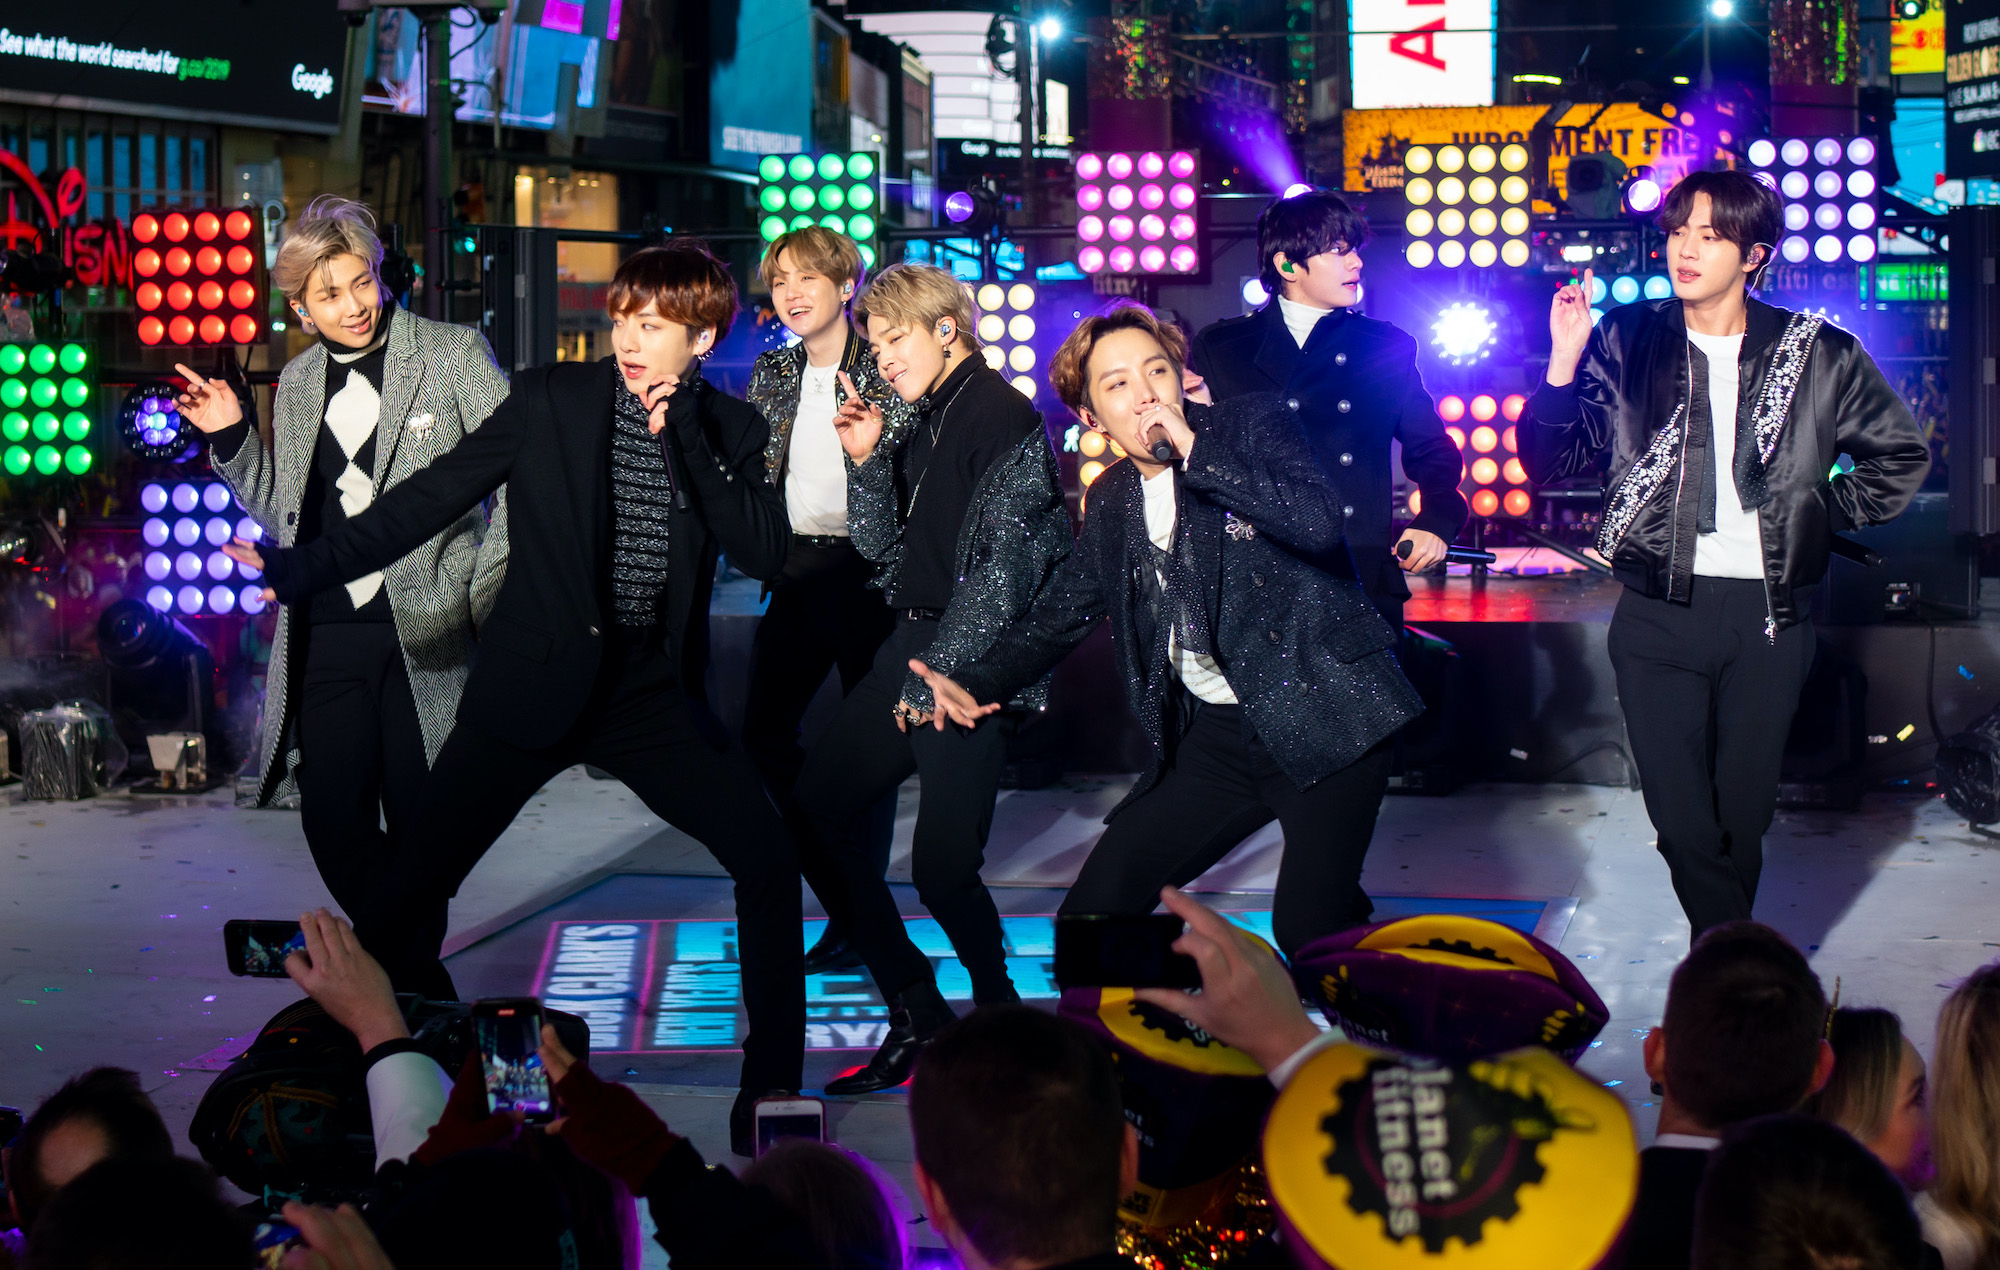 Watch BTS cap off a huge year with New Year's Eve performance in Times Square